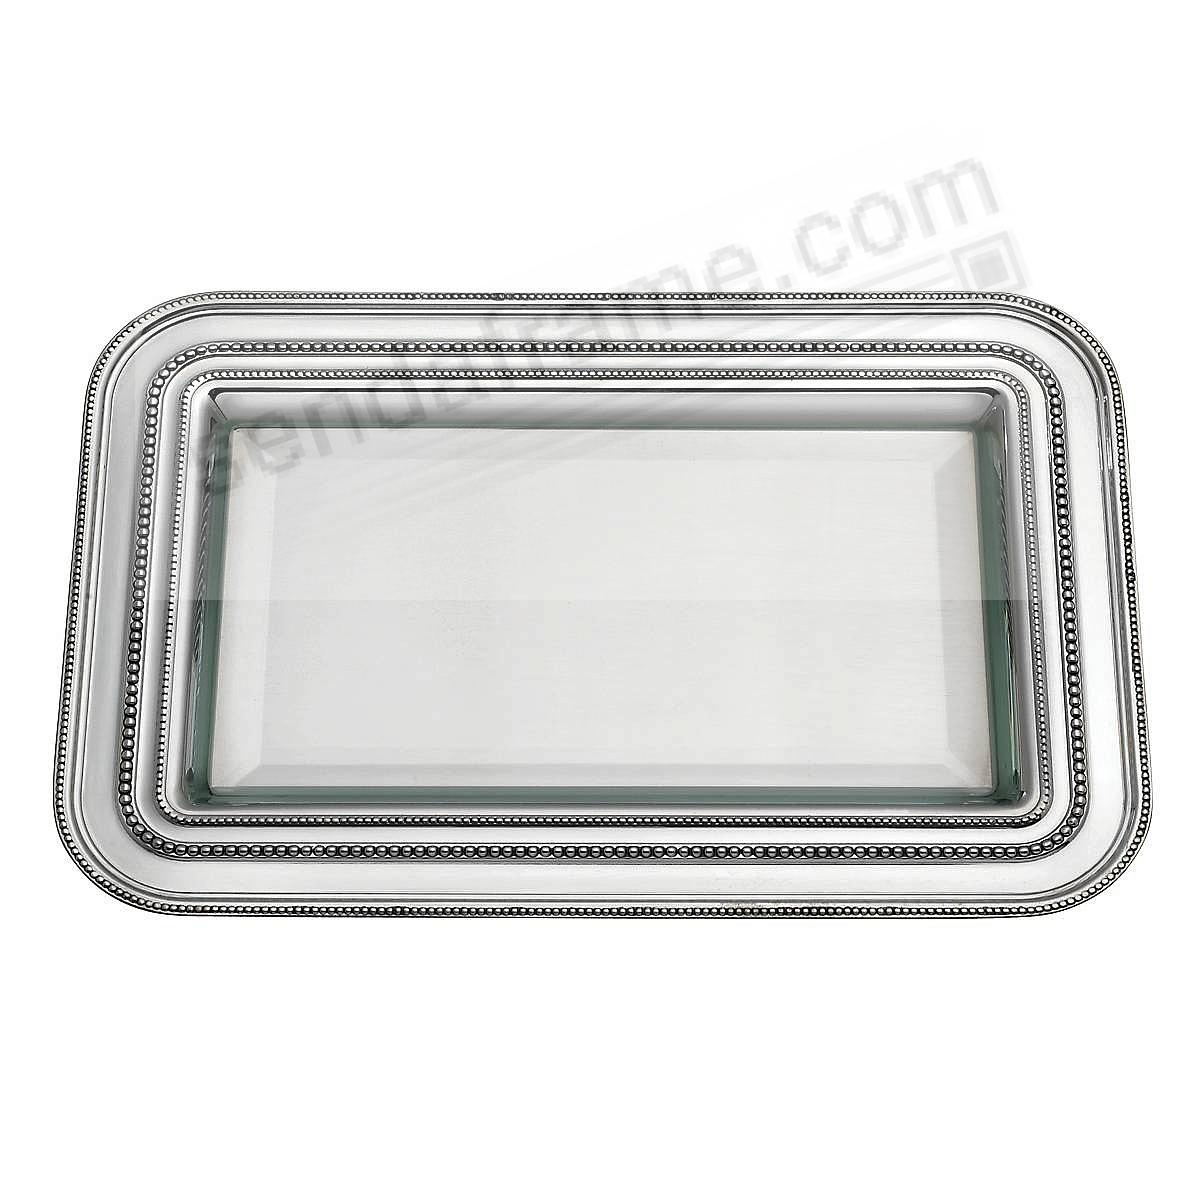 The AUGUST Pewter Tray by REED & BARTON / THOMAS O'BRIEN® - Engraveable!